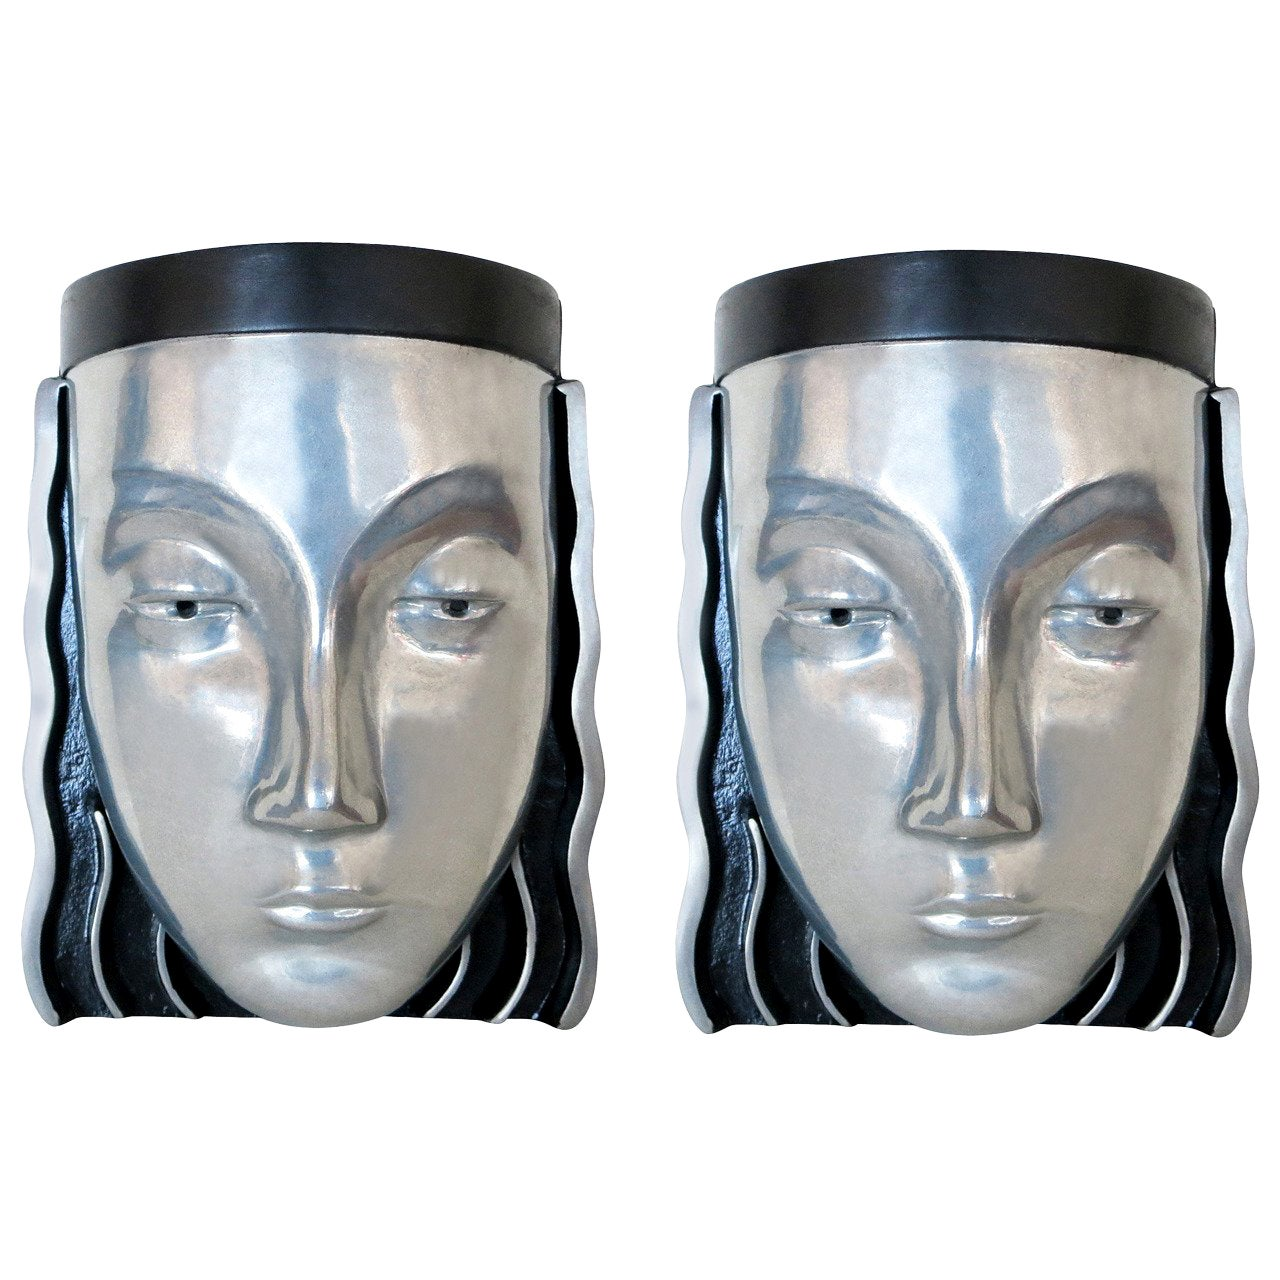 Art Deco Style Female Face Mask Wall Sconce